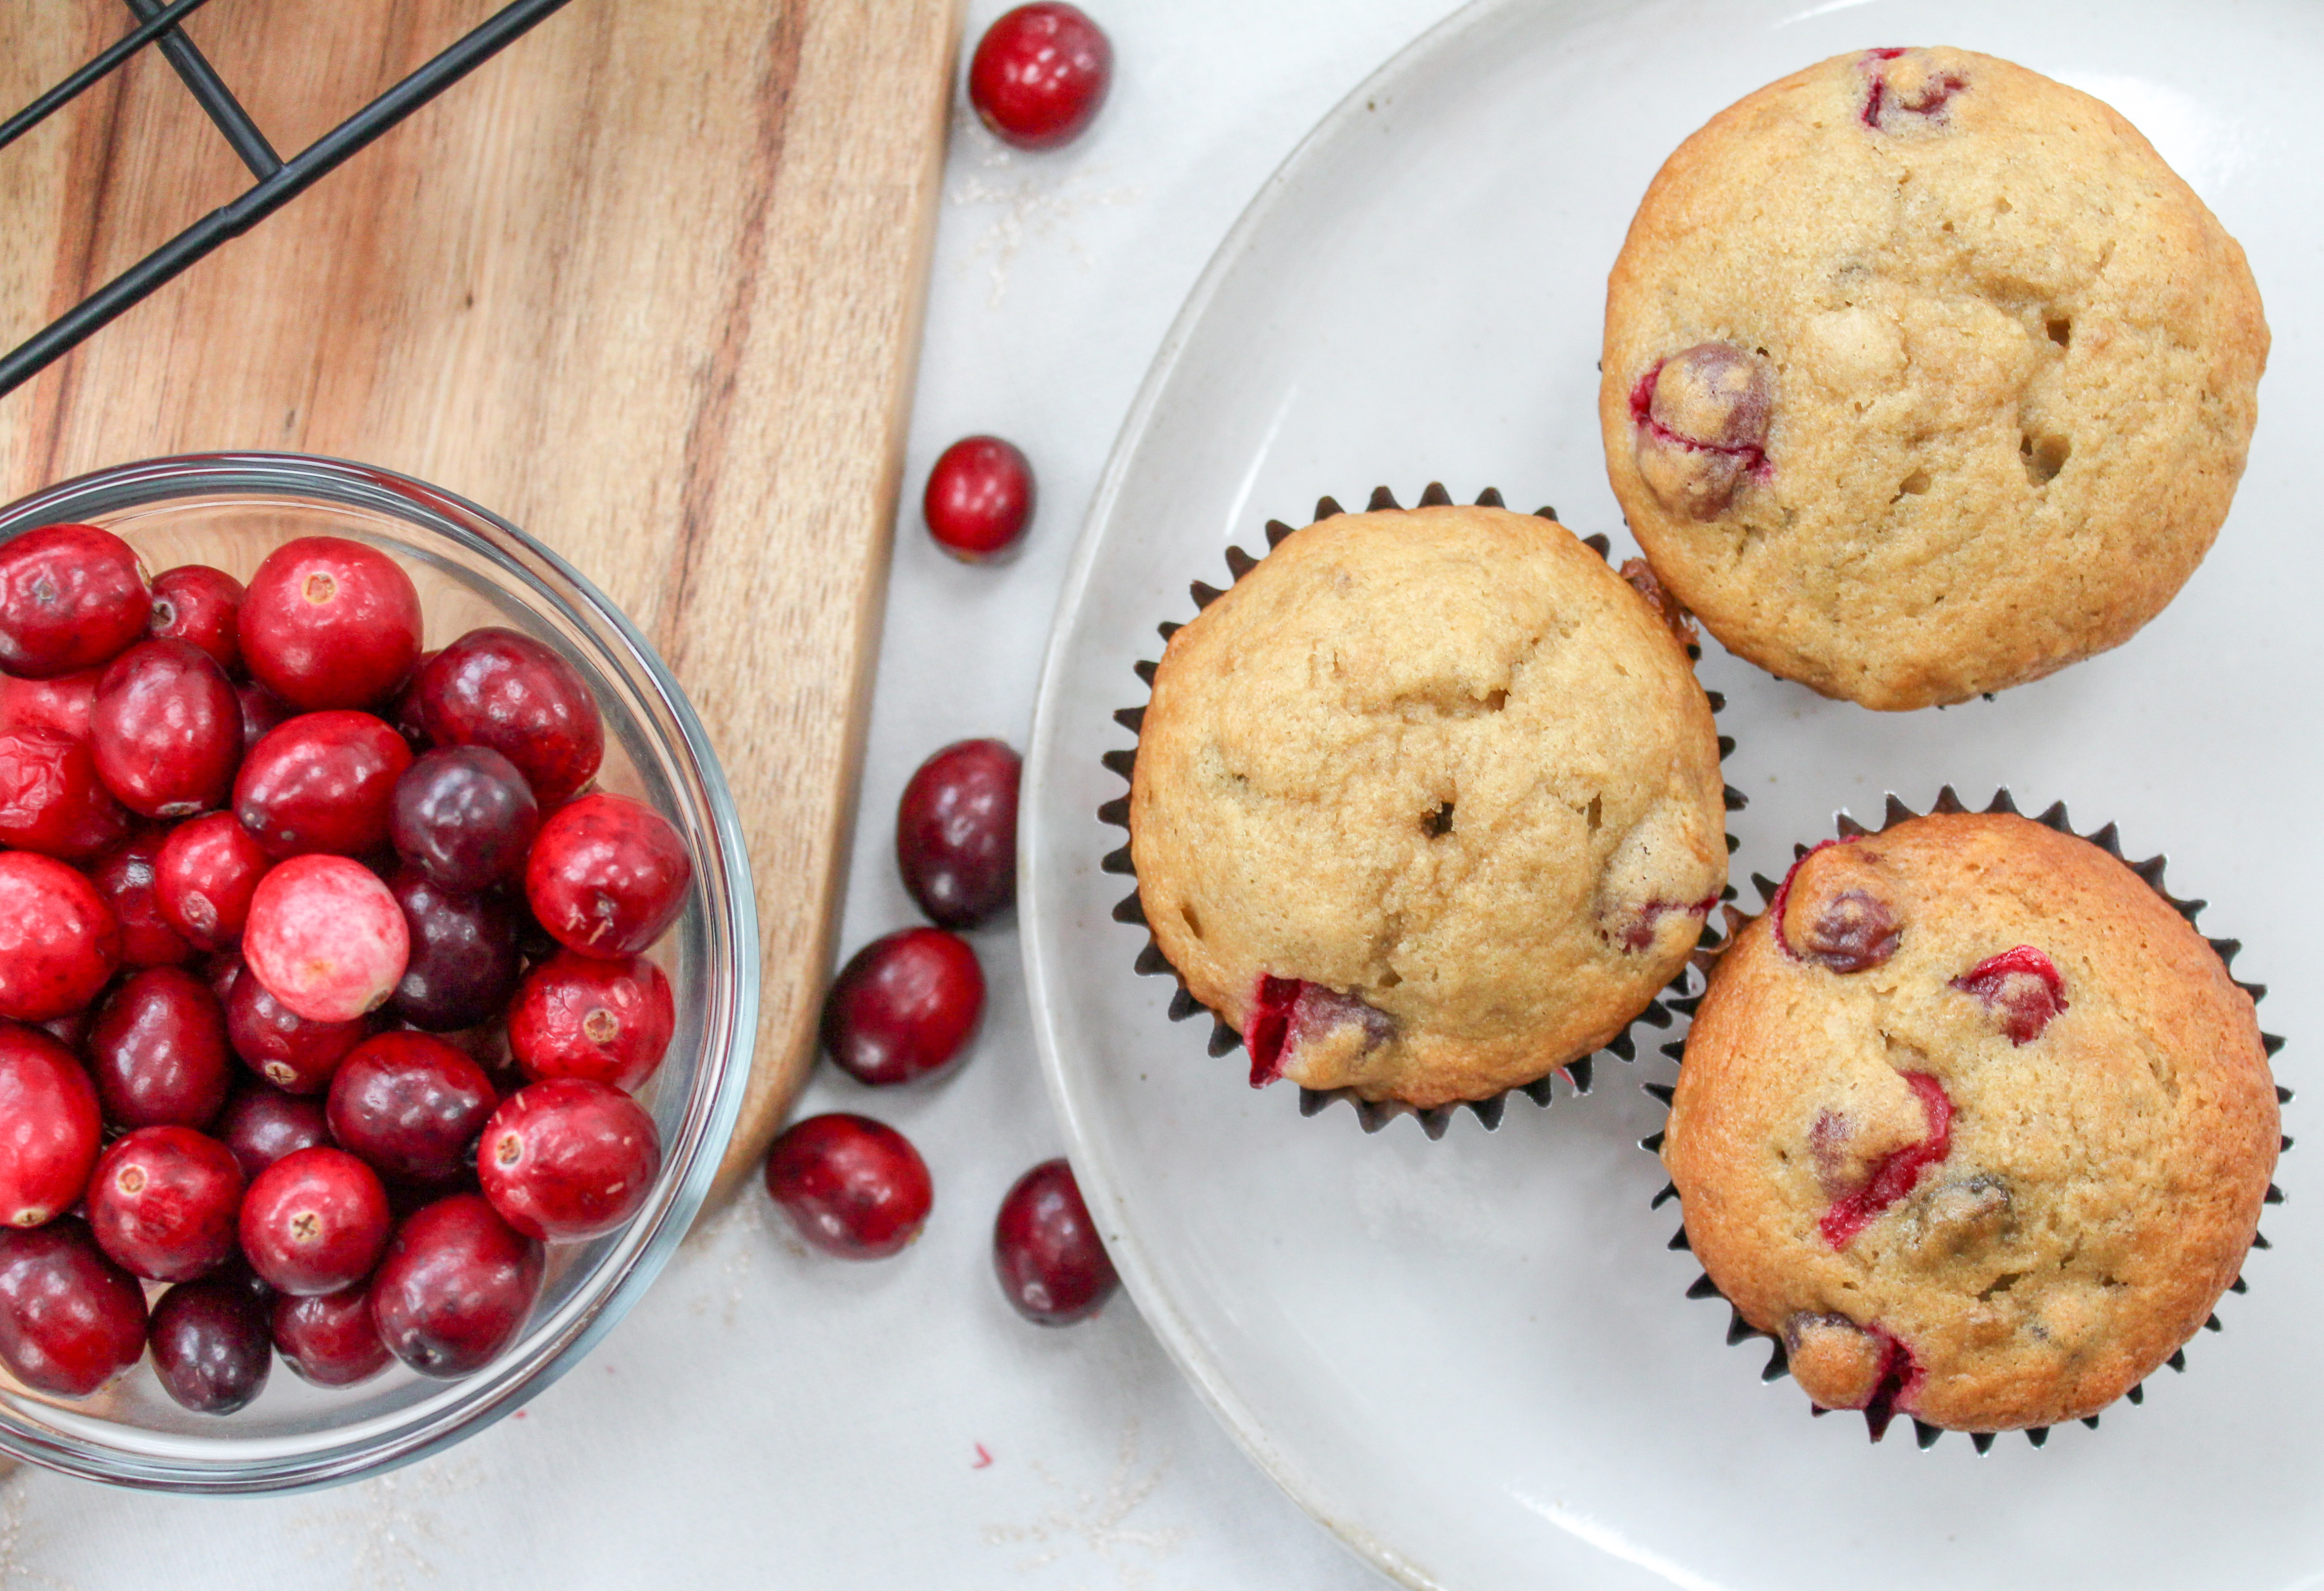 Several Muffins on a plate with cranberries on the side